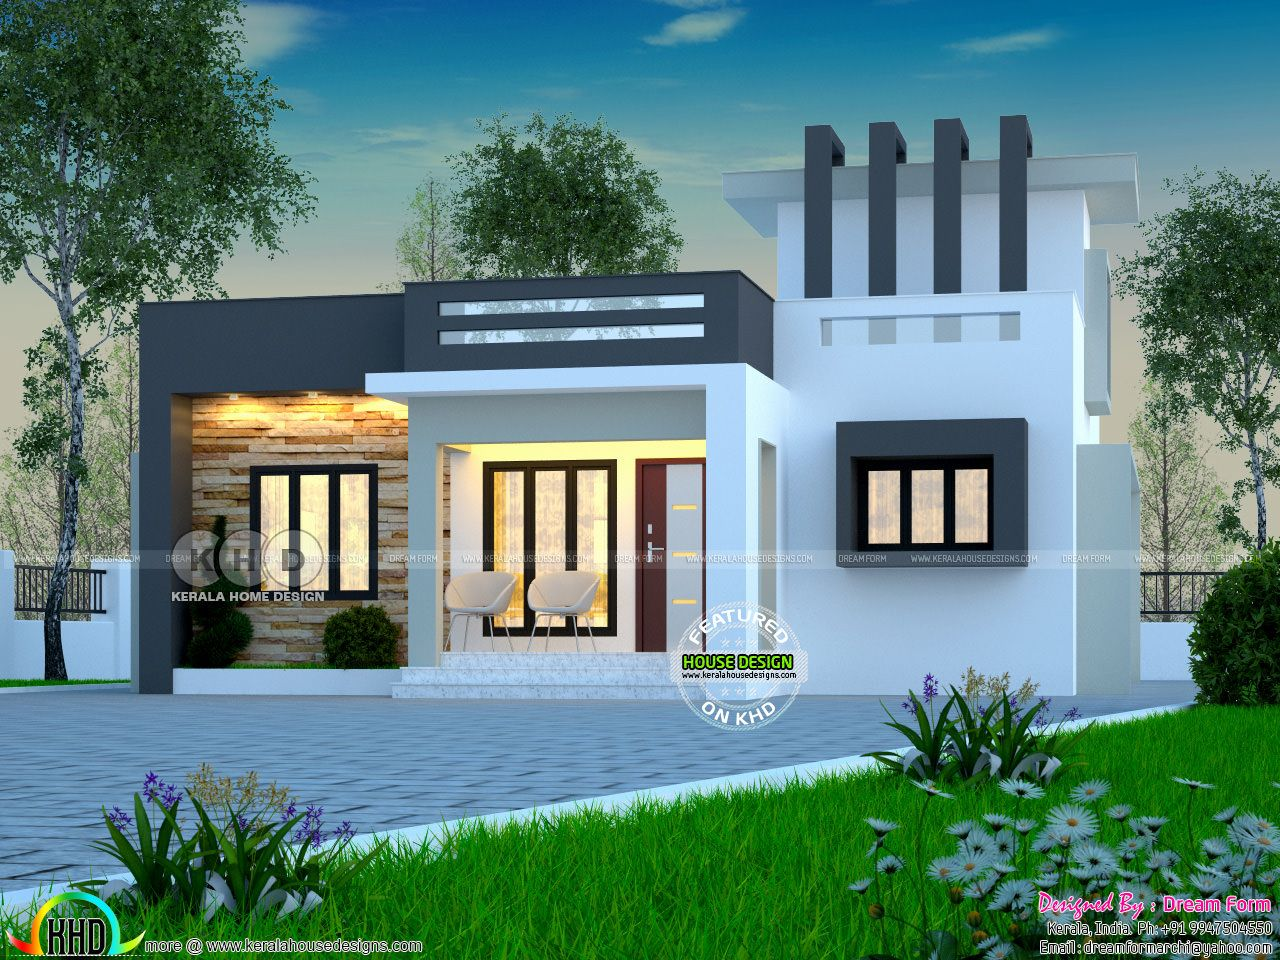 square feet bedroom contemporary style single floor house plan by dream form from kerala also beautiful under building design pinterest rh